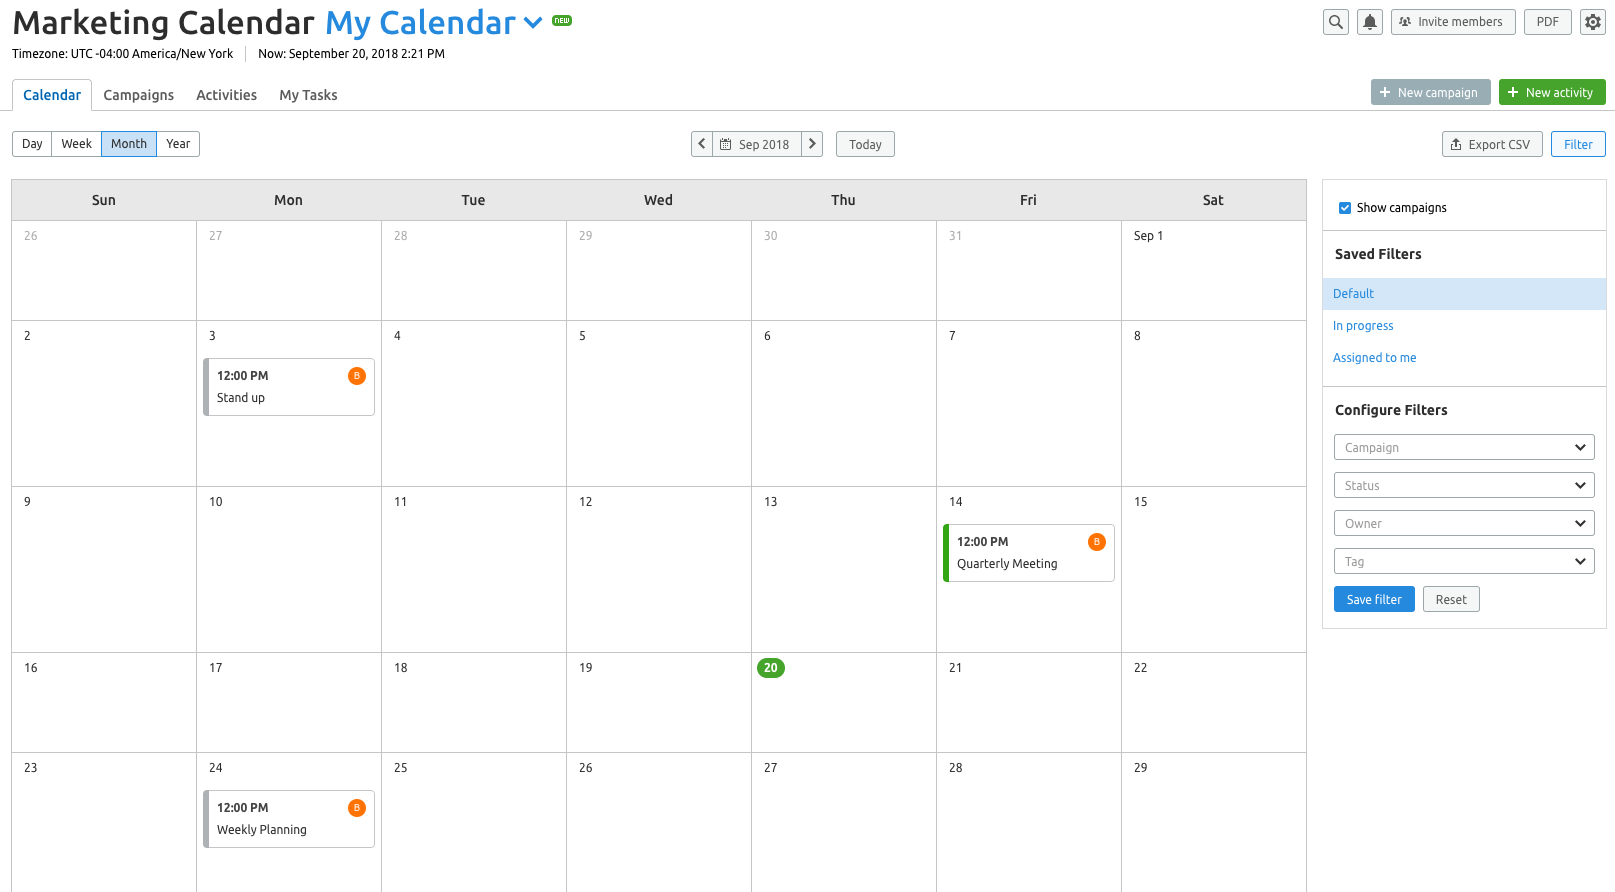 Marketing Calendar image 1